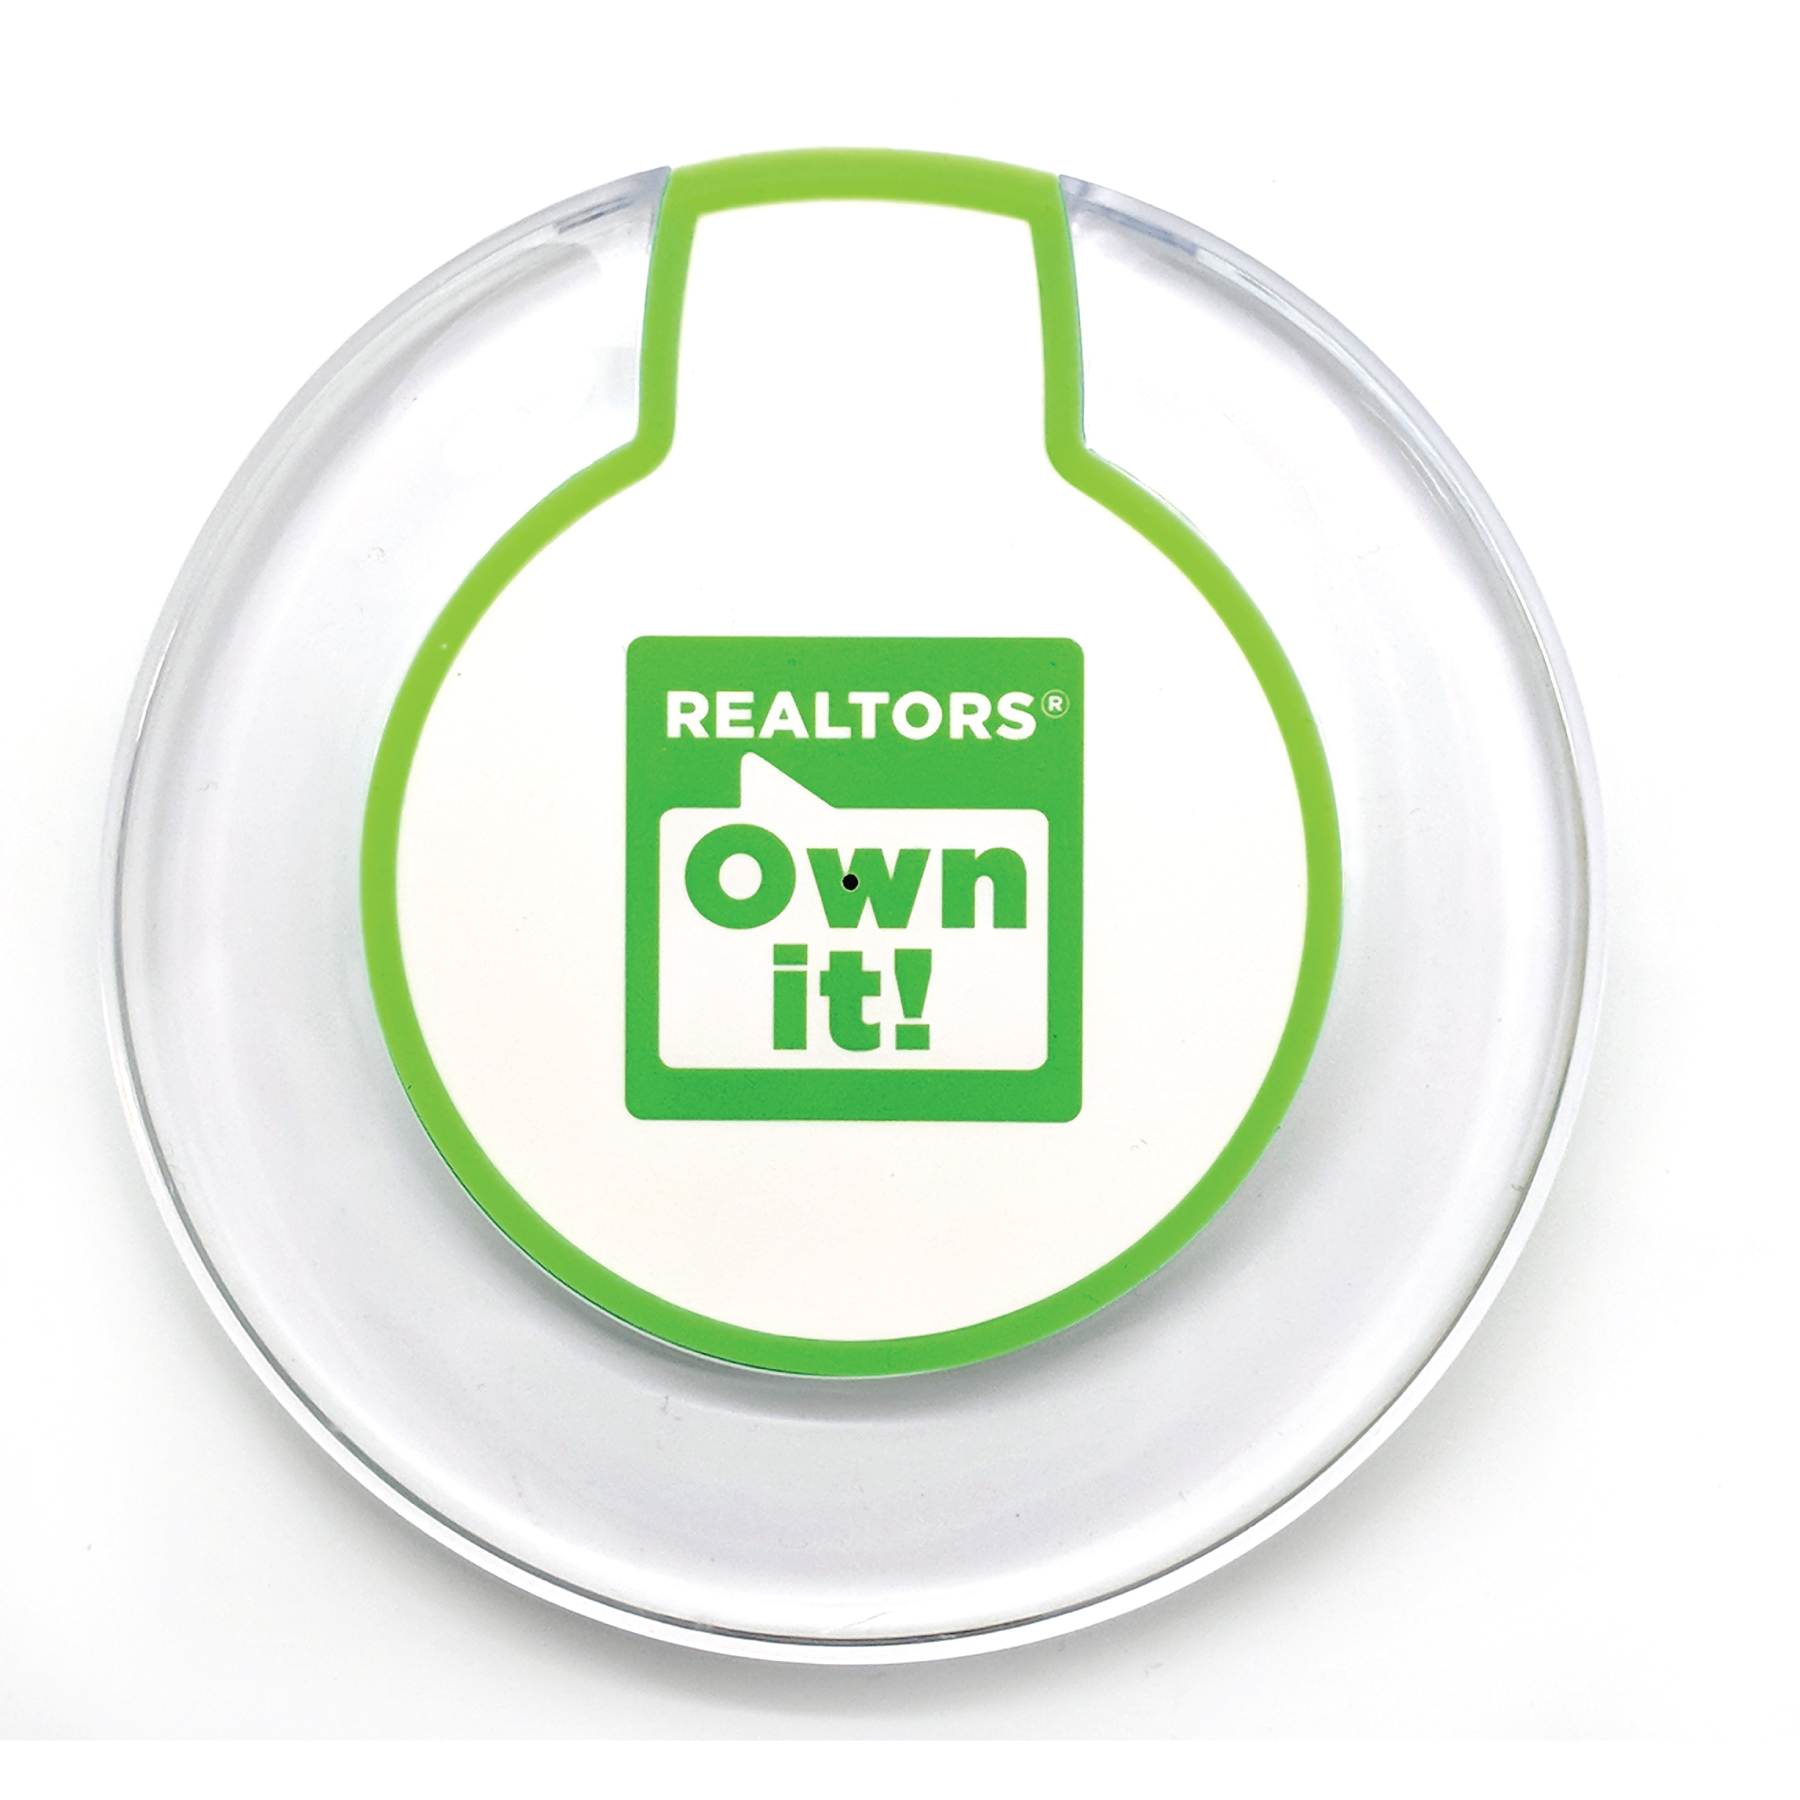 REALTORS® Own It! Qi Charger Chi,Chargers,Inductives,Charging,Pads,Sets,fills,qui,qii,quii,apples,phones,smartphones,charges,cords,powers